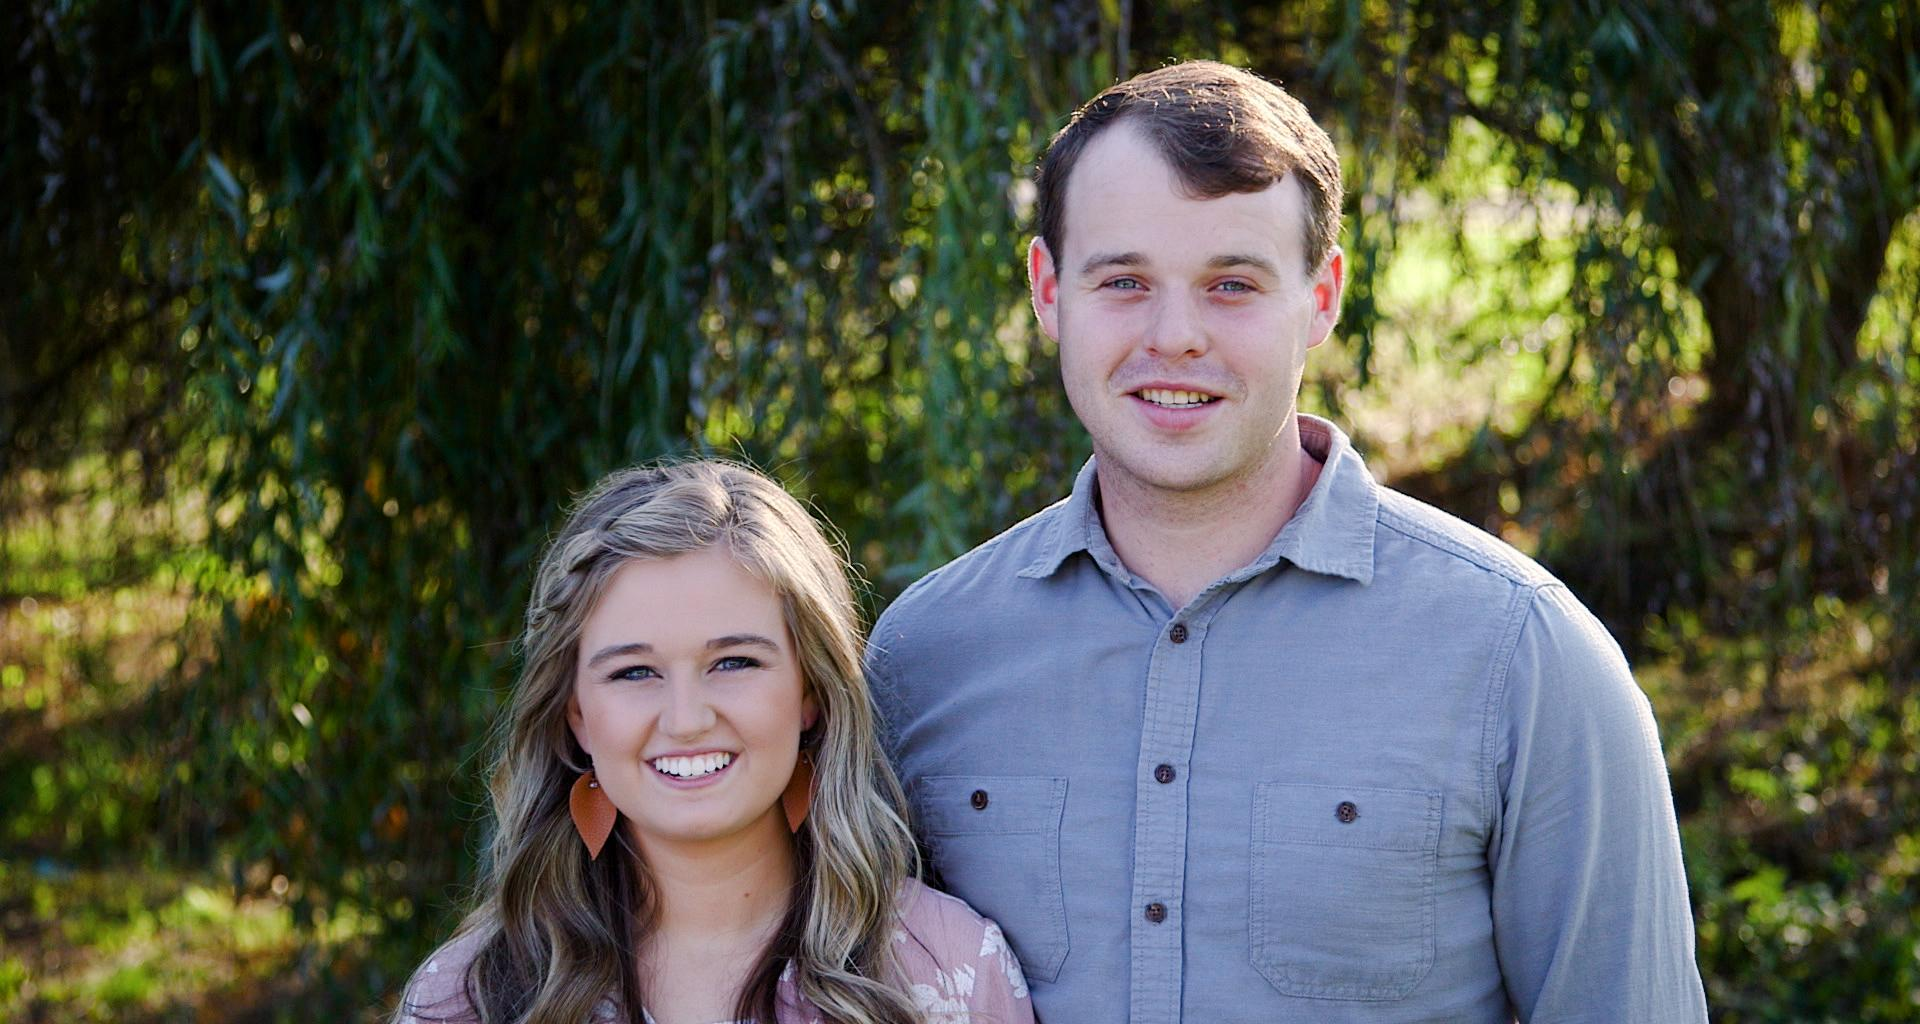 Joseph Duggar And Wife Kendra Expecting Their 3rd Baby Only 9 Months After Welcoming Their Daughter - Check Out Their Announcement!